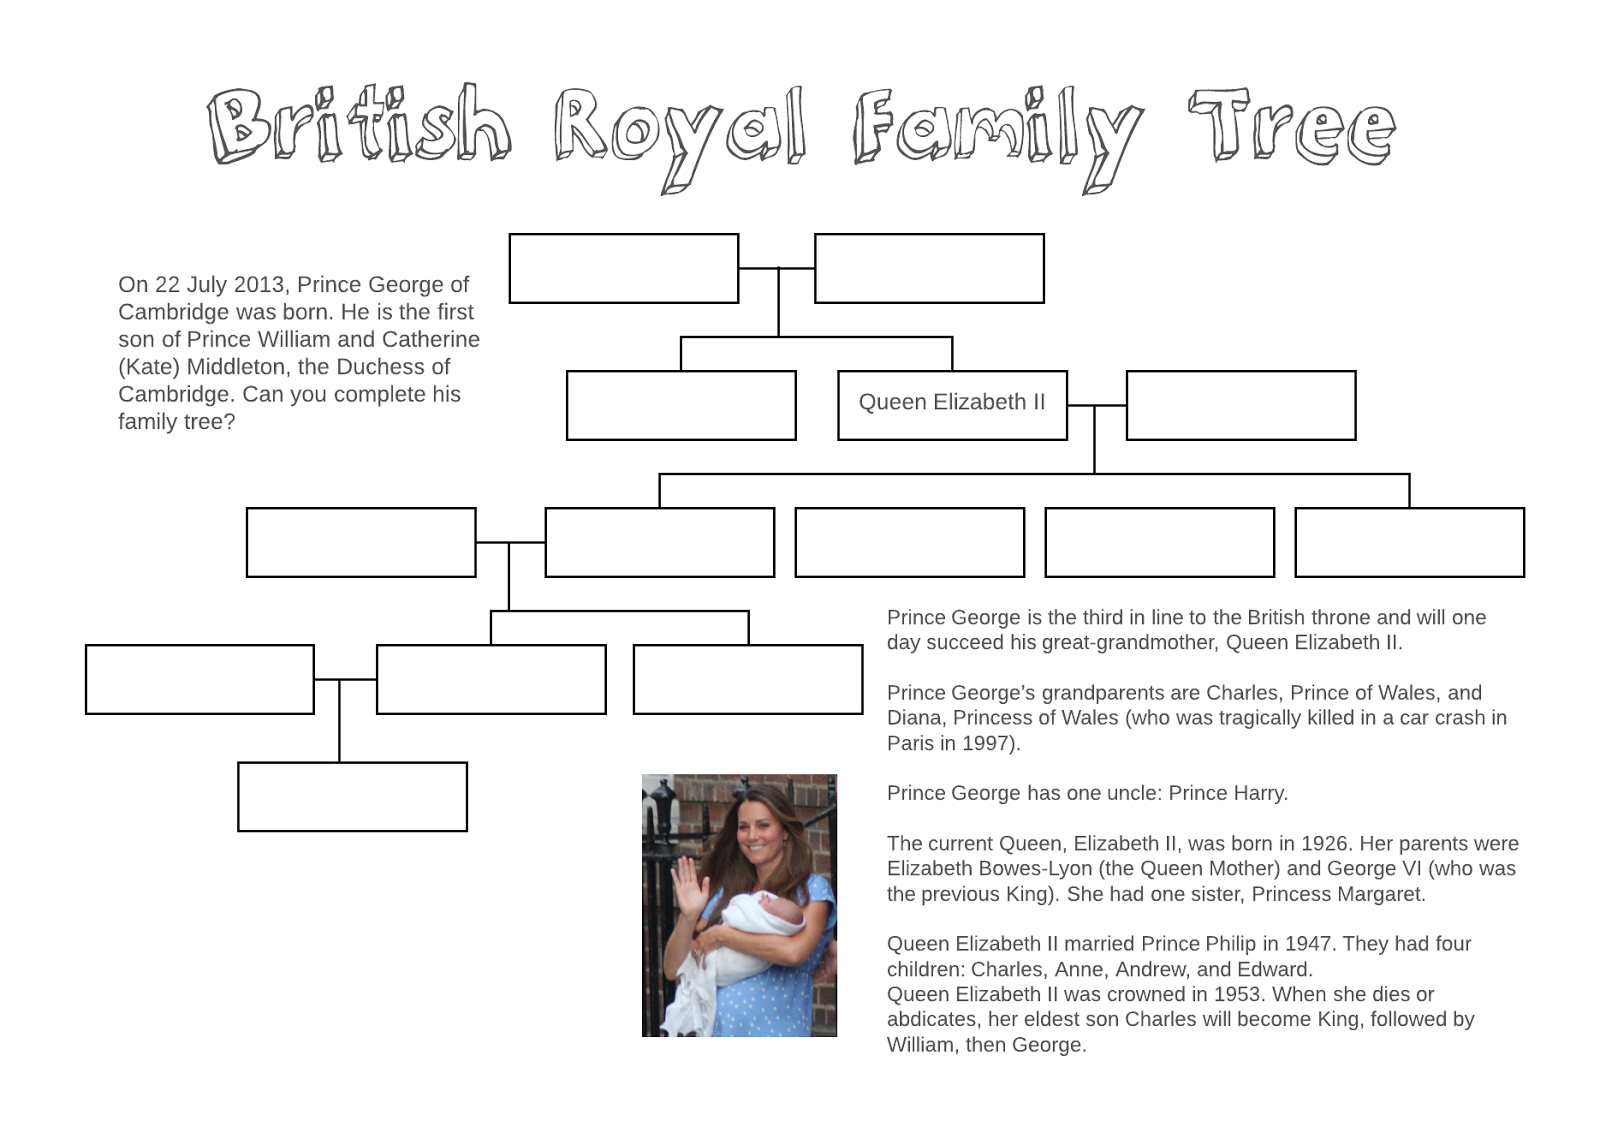 Worksheets Family Tree Worksheet Printable adventures in tefl british royal family tree free printable worksheet click here to get the pdf